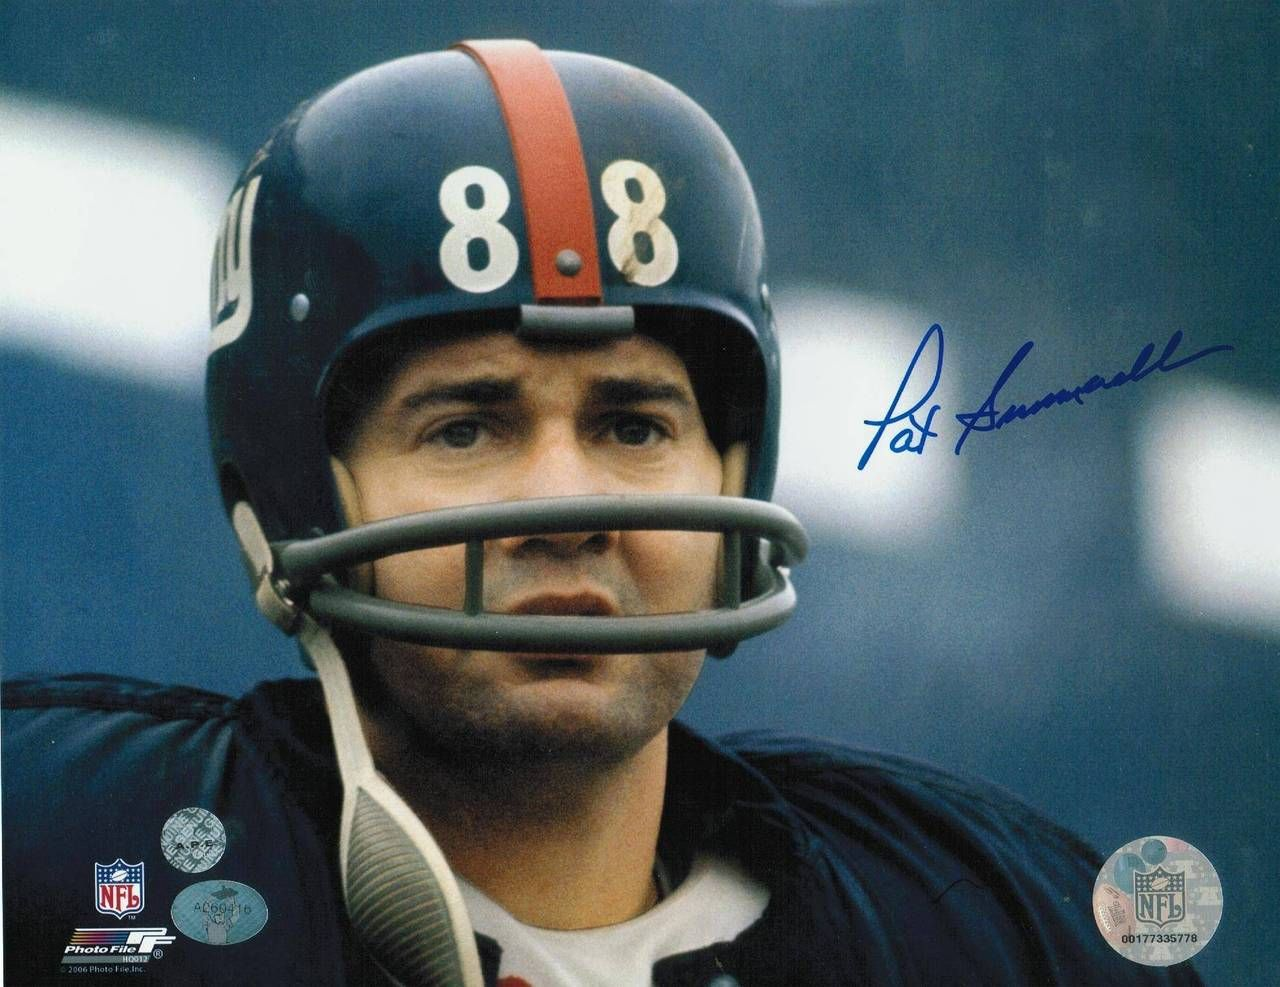 Pat Summerall New York Giants Autographed 8x10 Photo Head